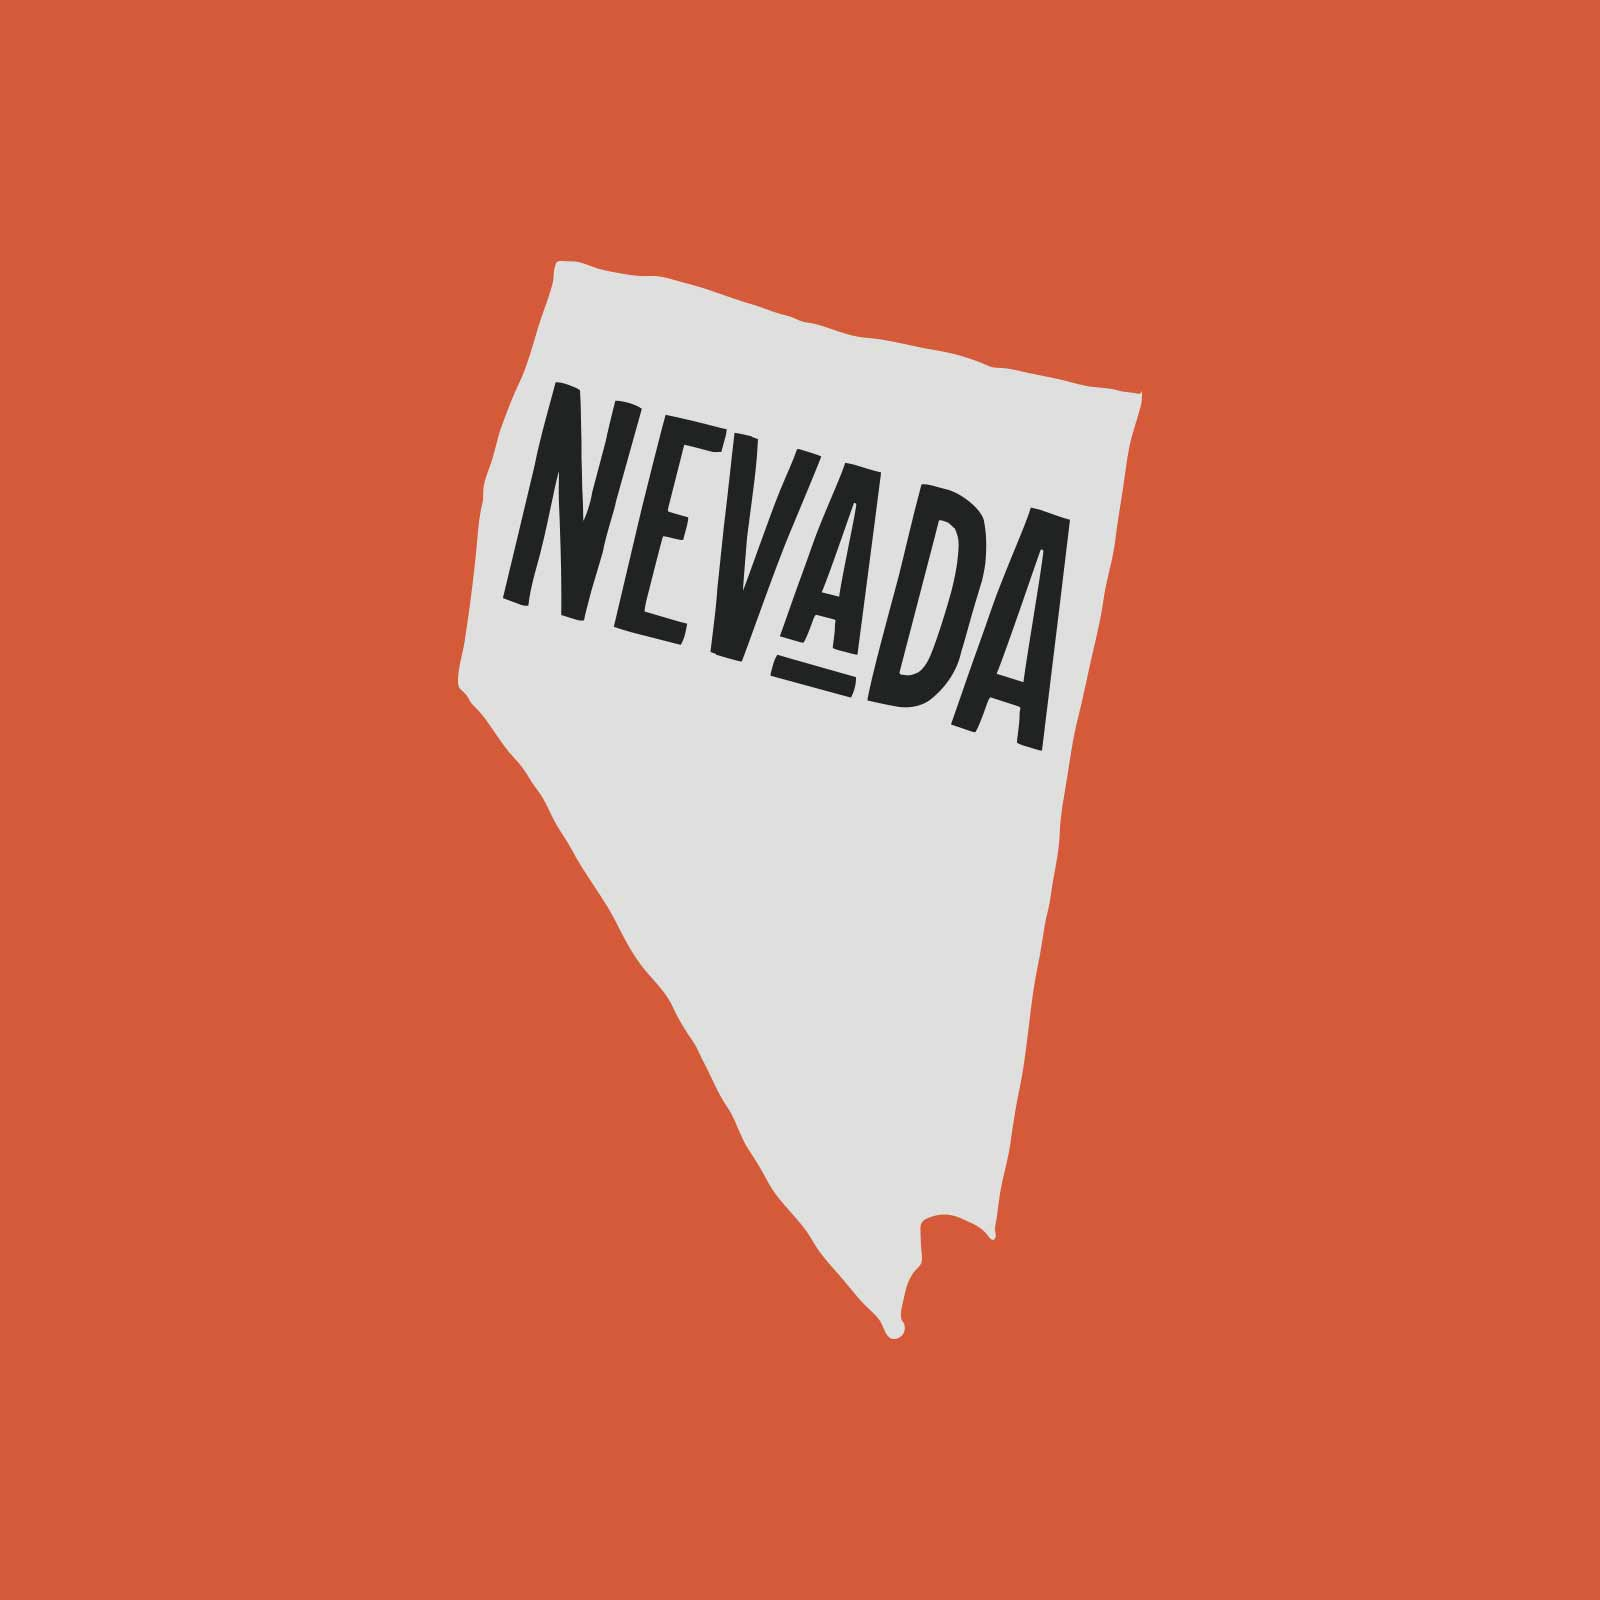 How to start a business in Nevada